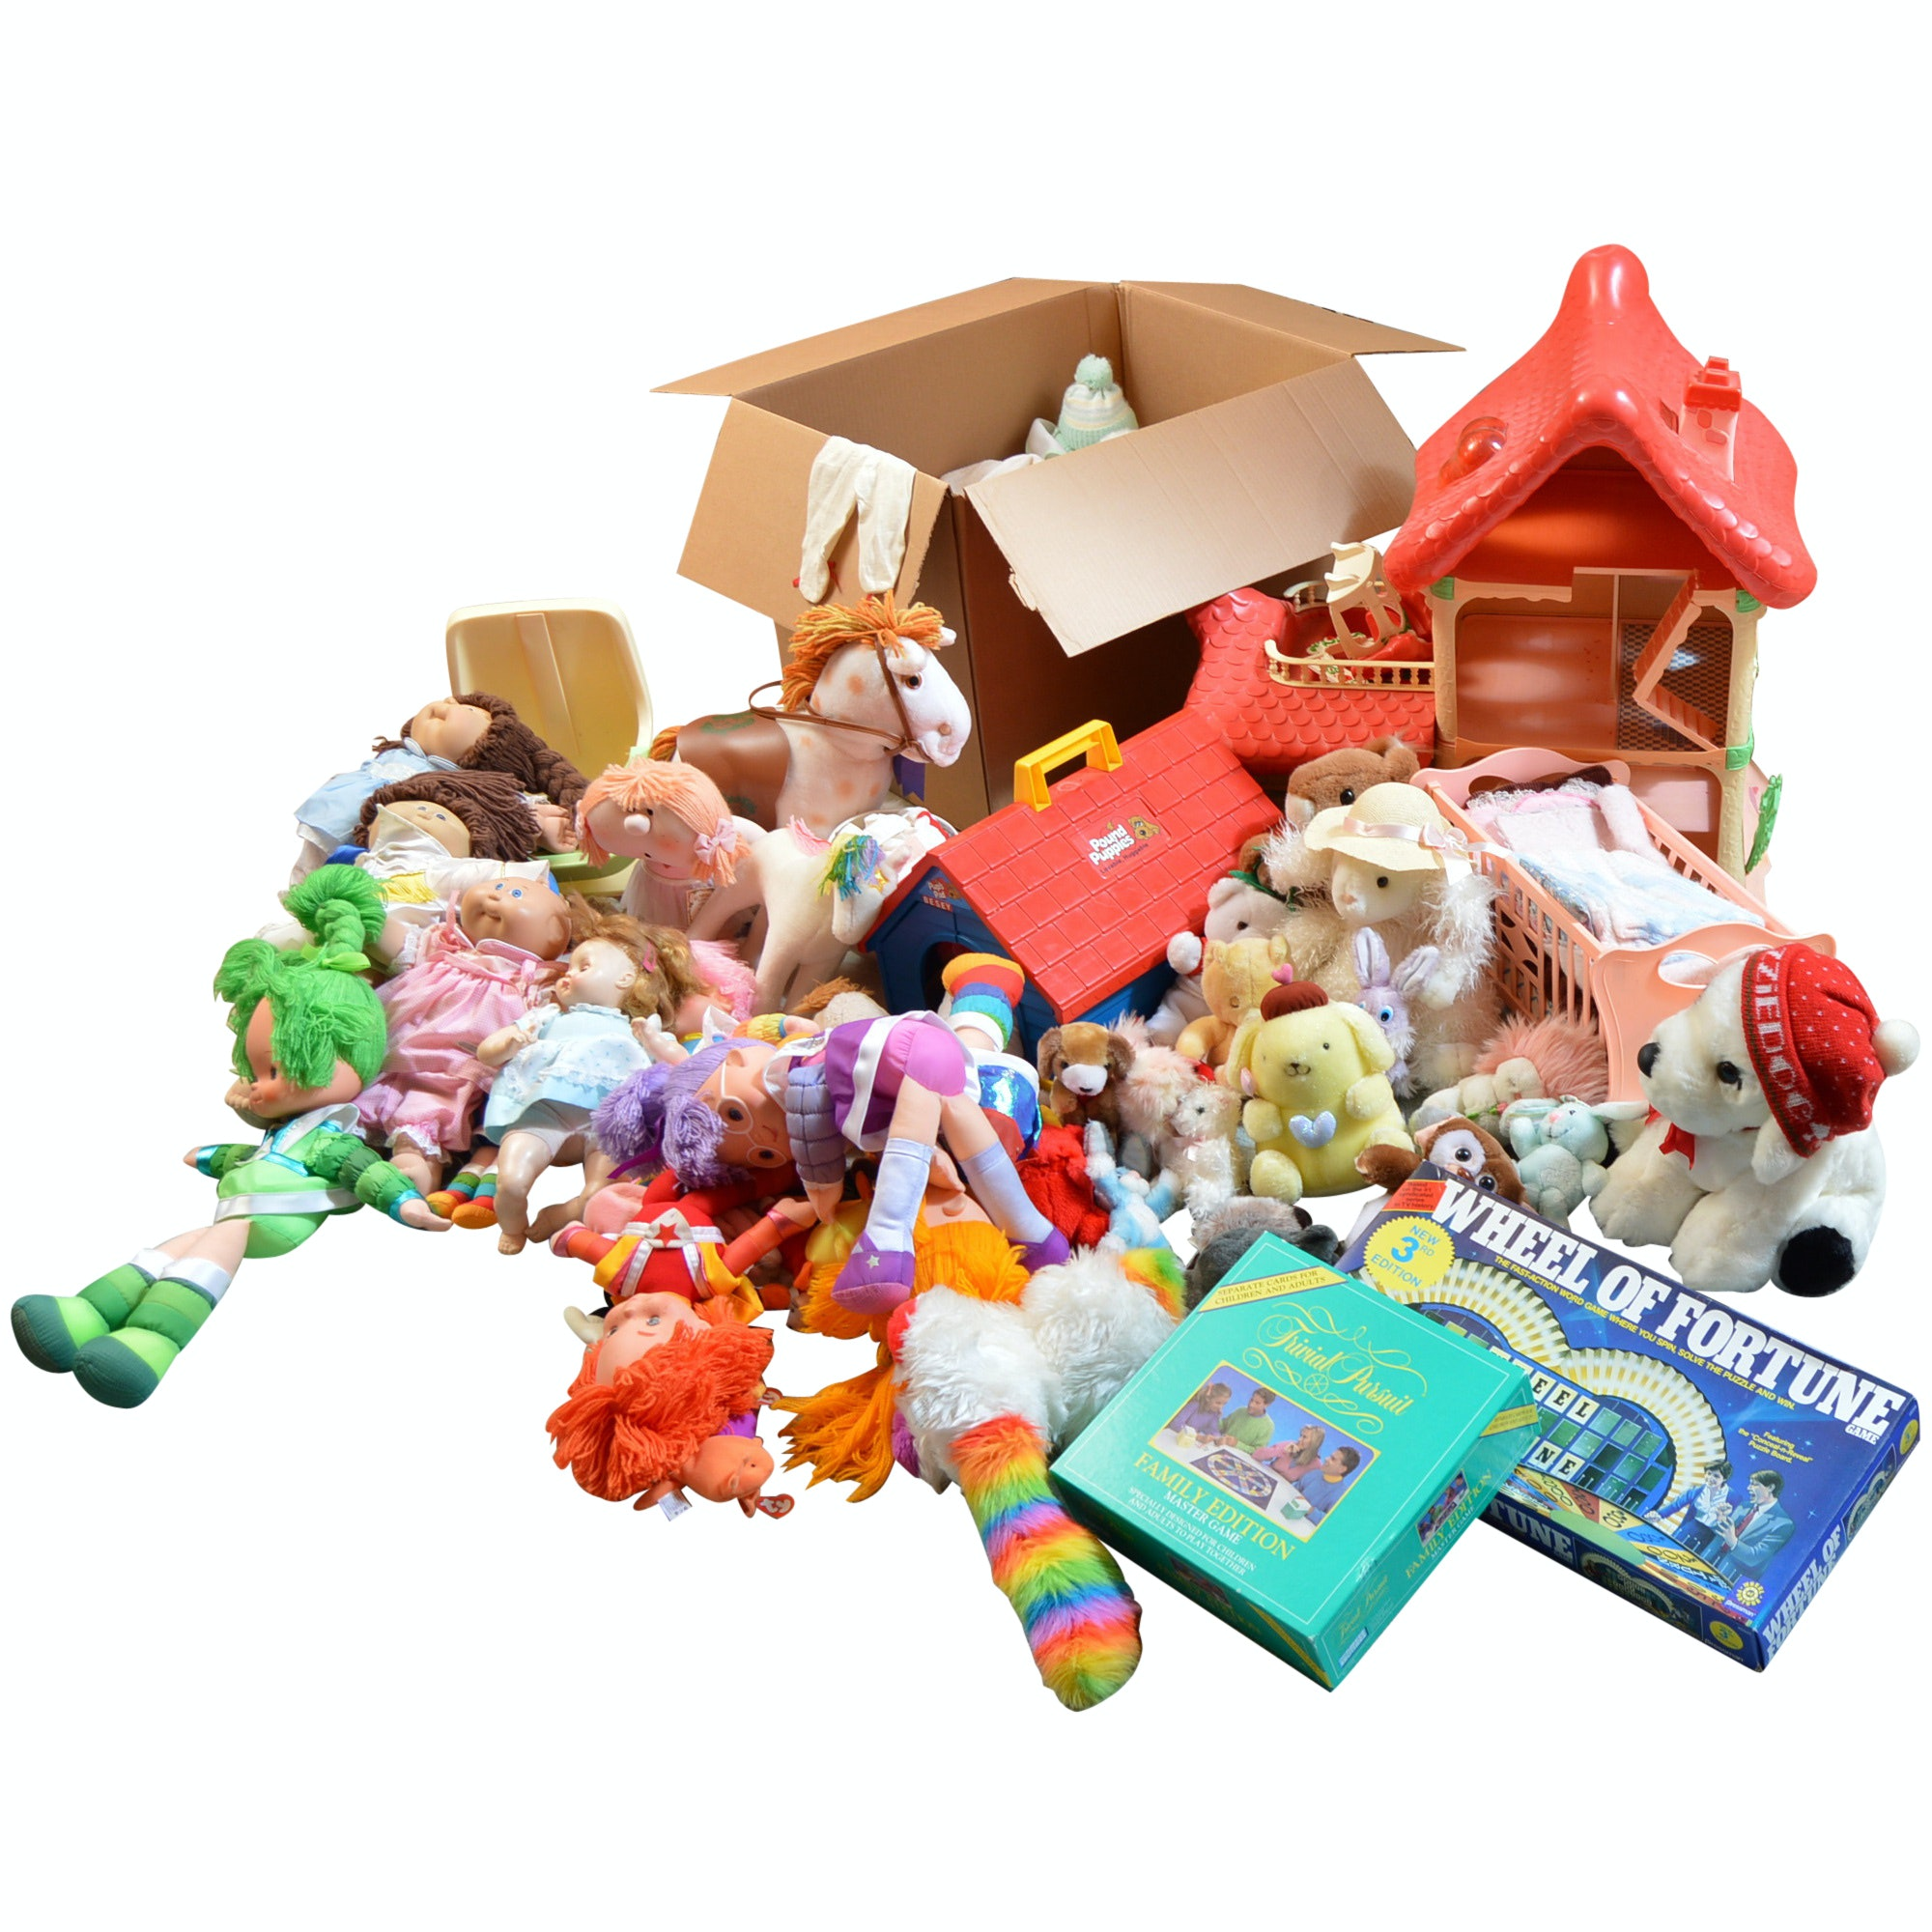 Children's Group with Dolls, Games and Toy Collection with Madame Alexander